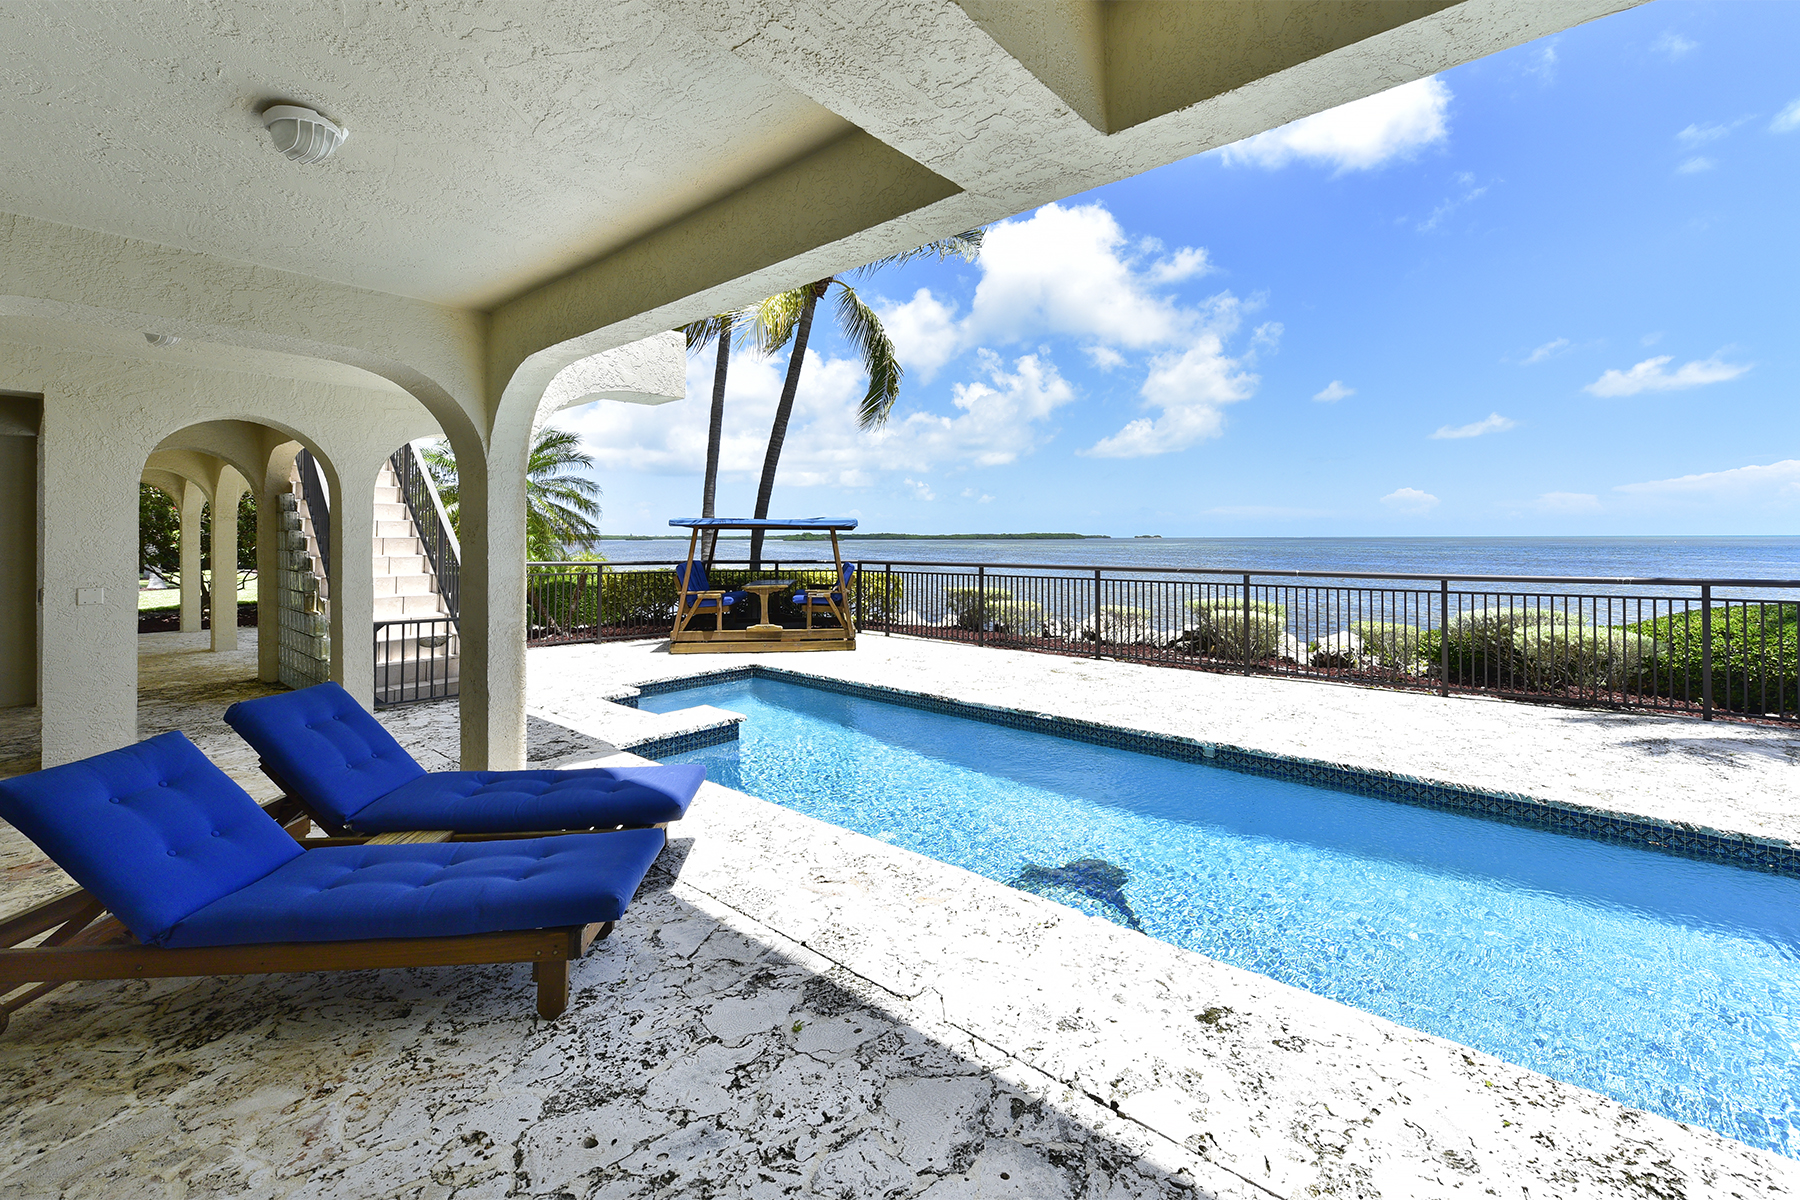 Additional photo for property listing at Gated & Private Oceanfront Location 544 Ocean Cay Key Largo, フロリダ 33037 アメリカ合衆国